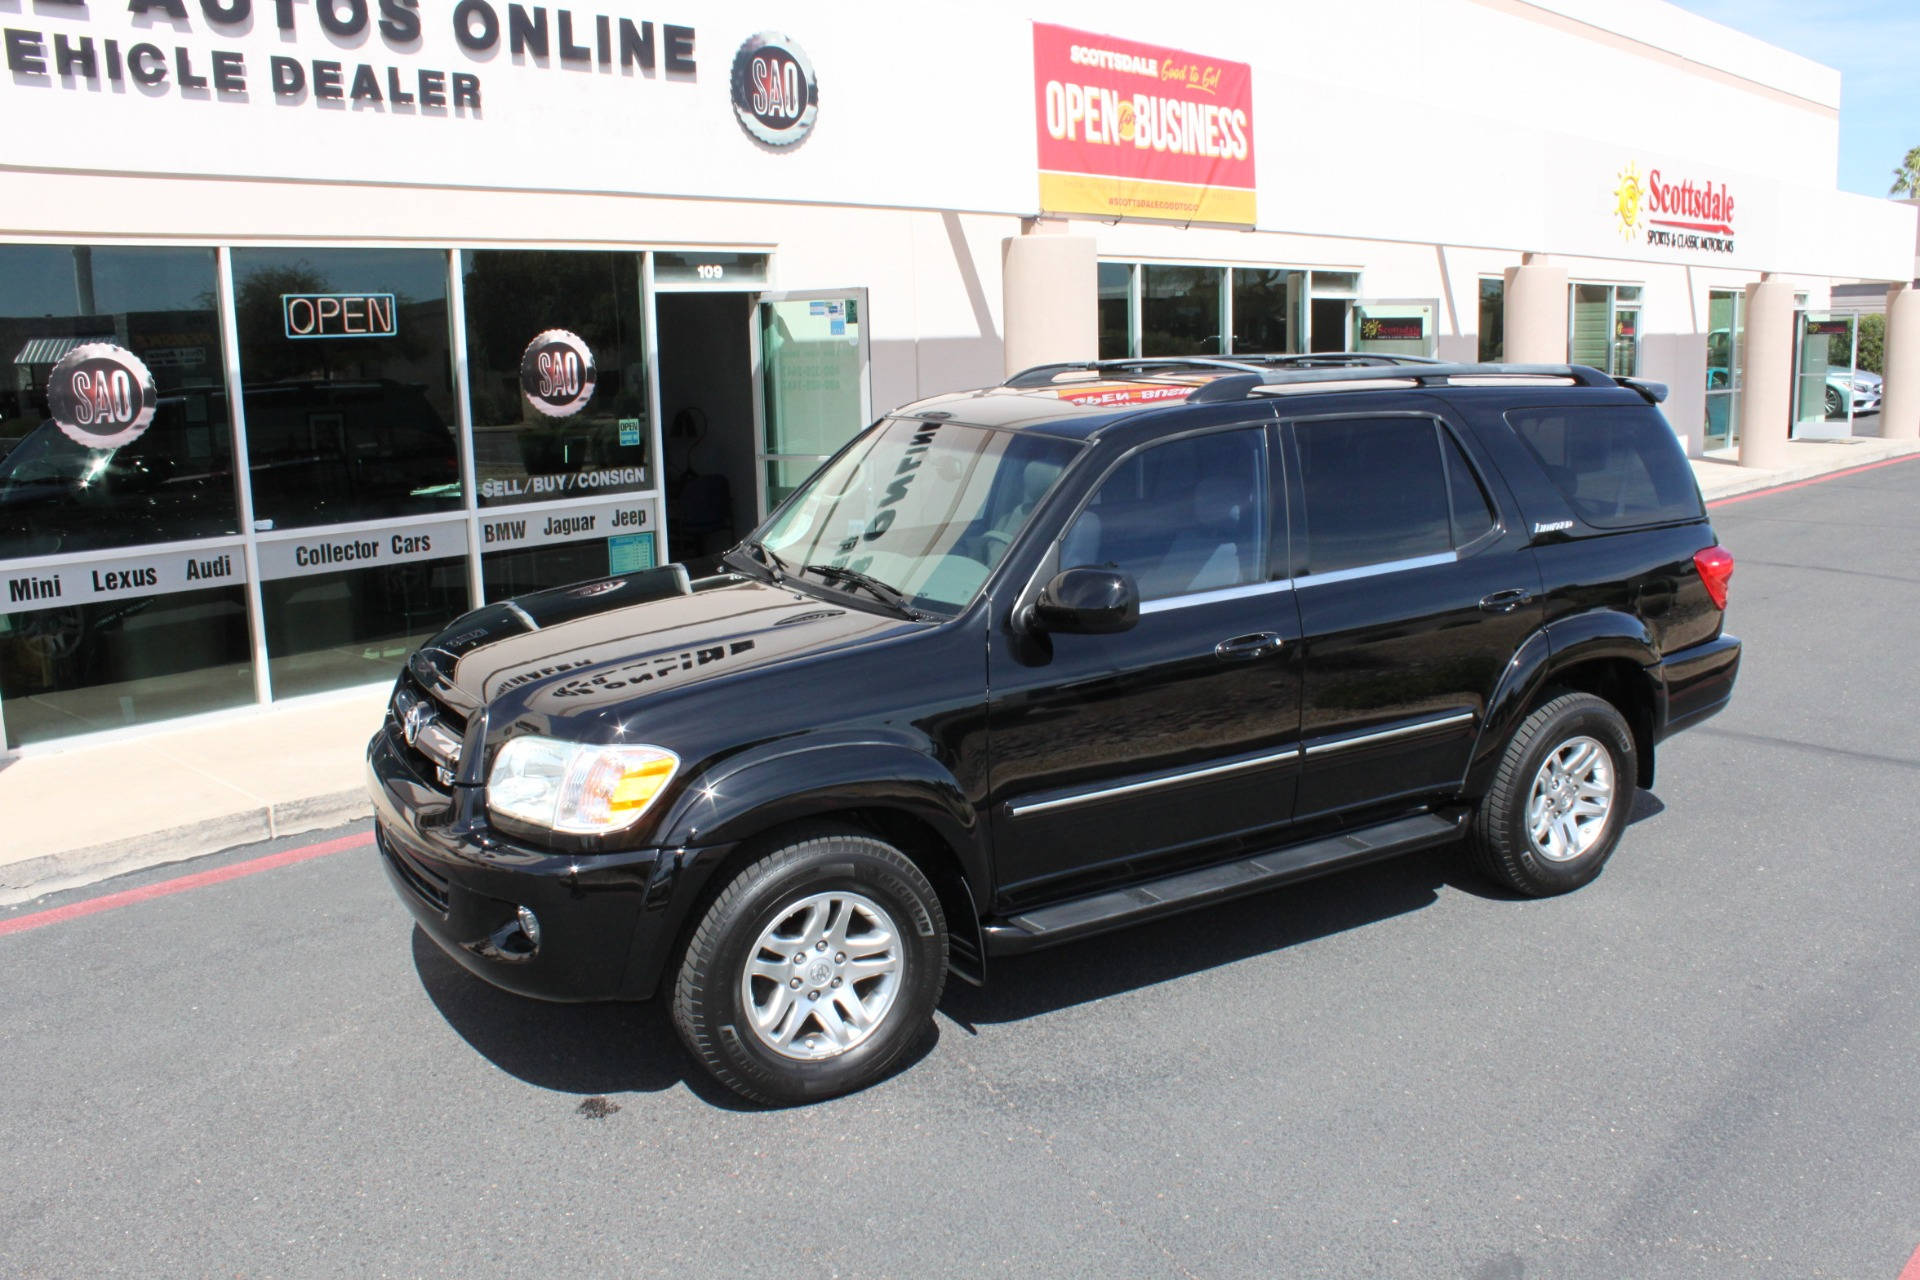 Used-2005-Toyota-Sequoia-Limited-Dodge